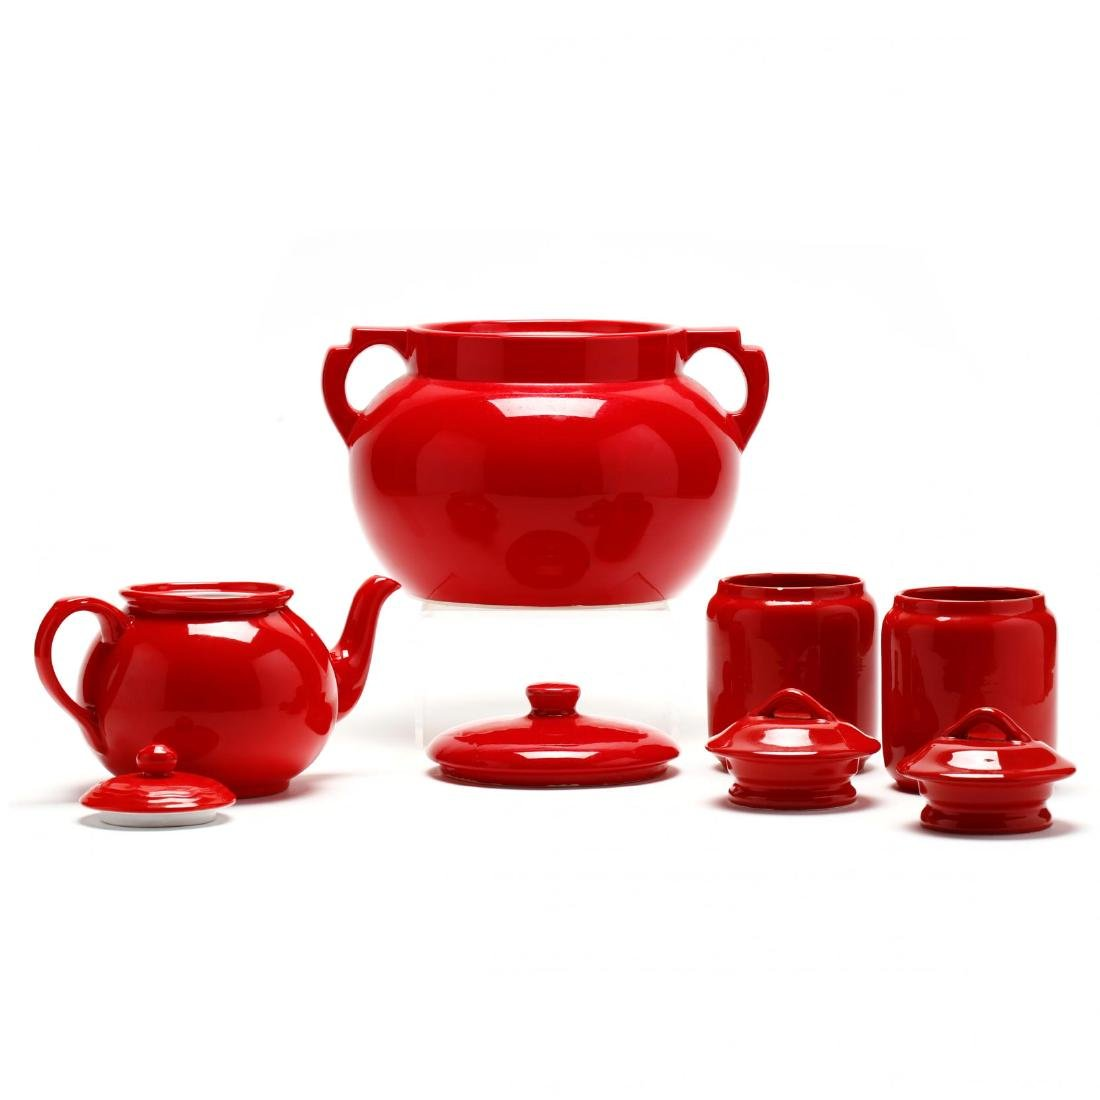 An Assortment of Red Glazed Pottery Tableware - 10